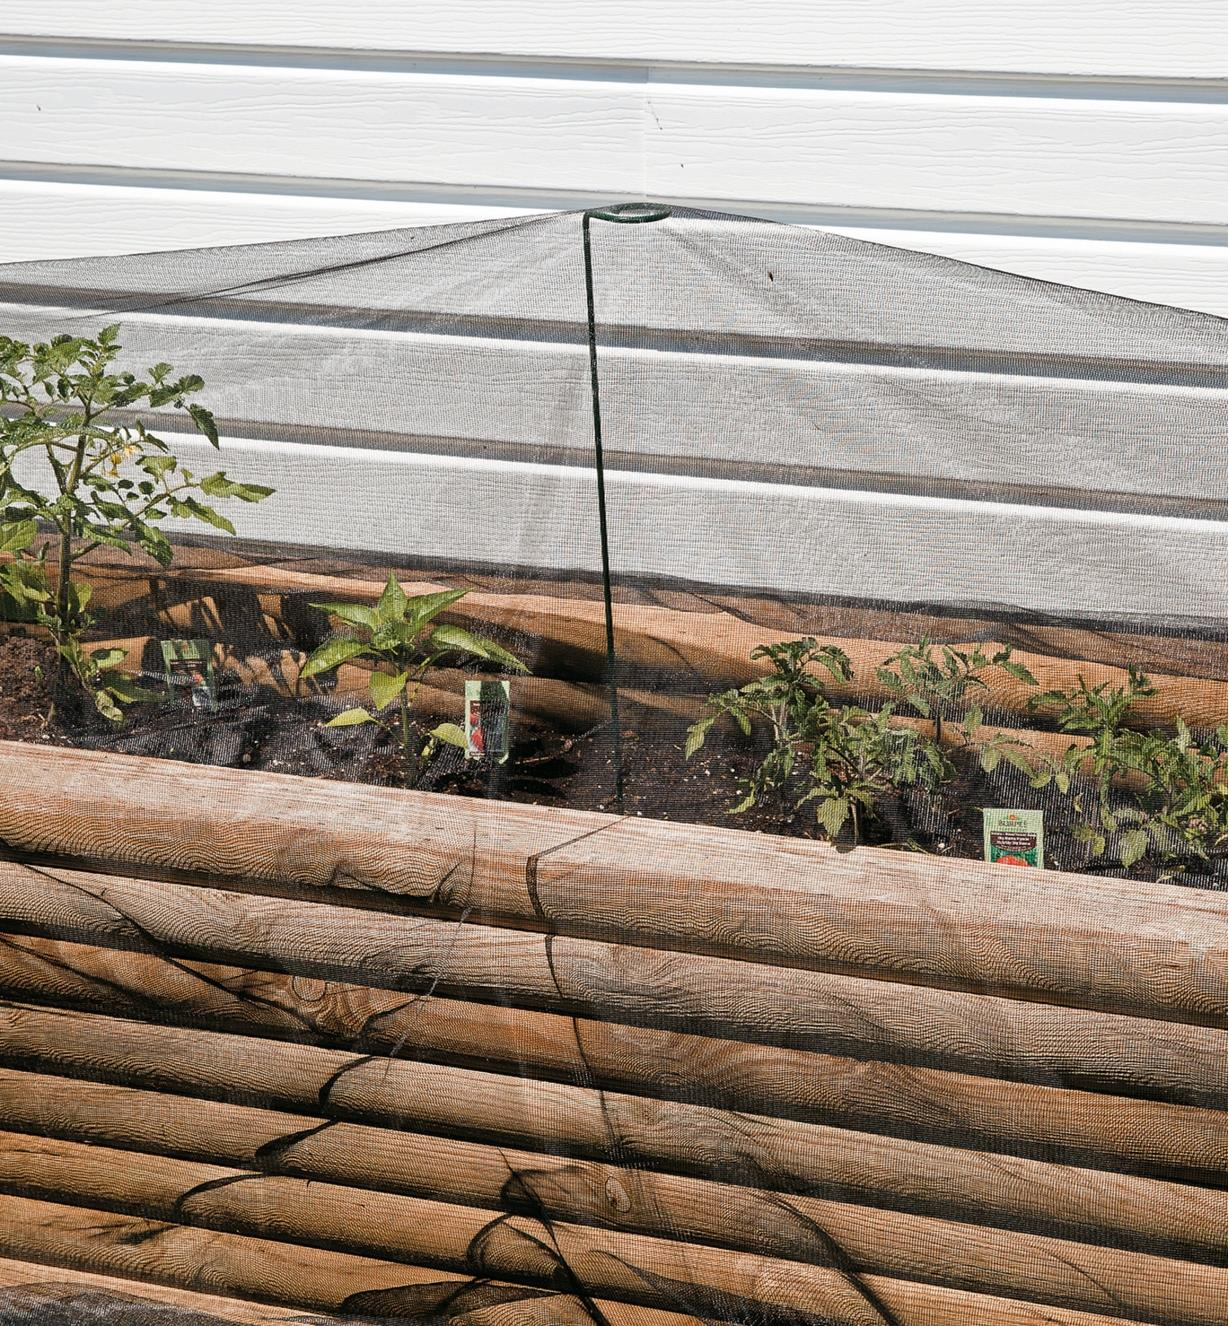 Mosquito Netting used to cover plants in a raised-bed garden